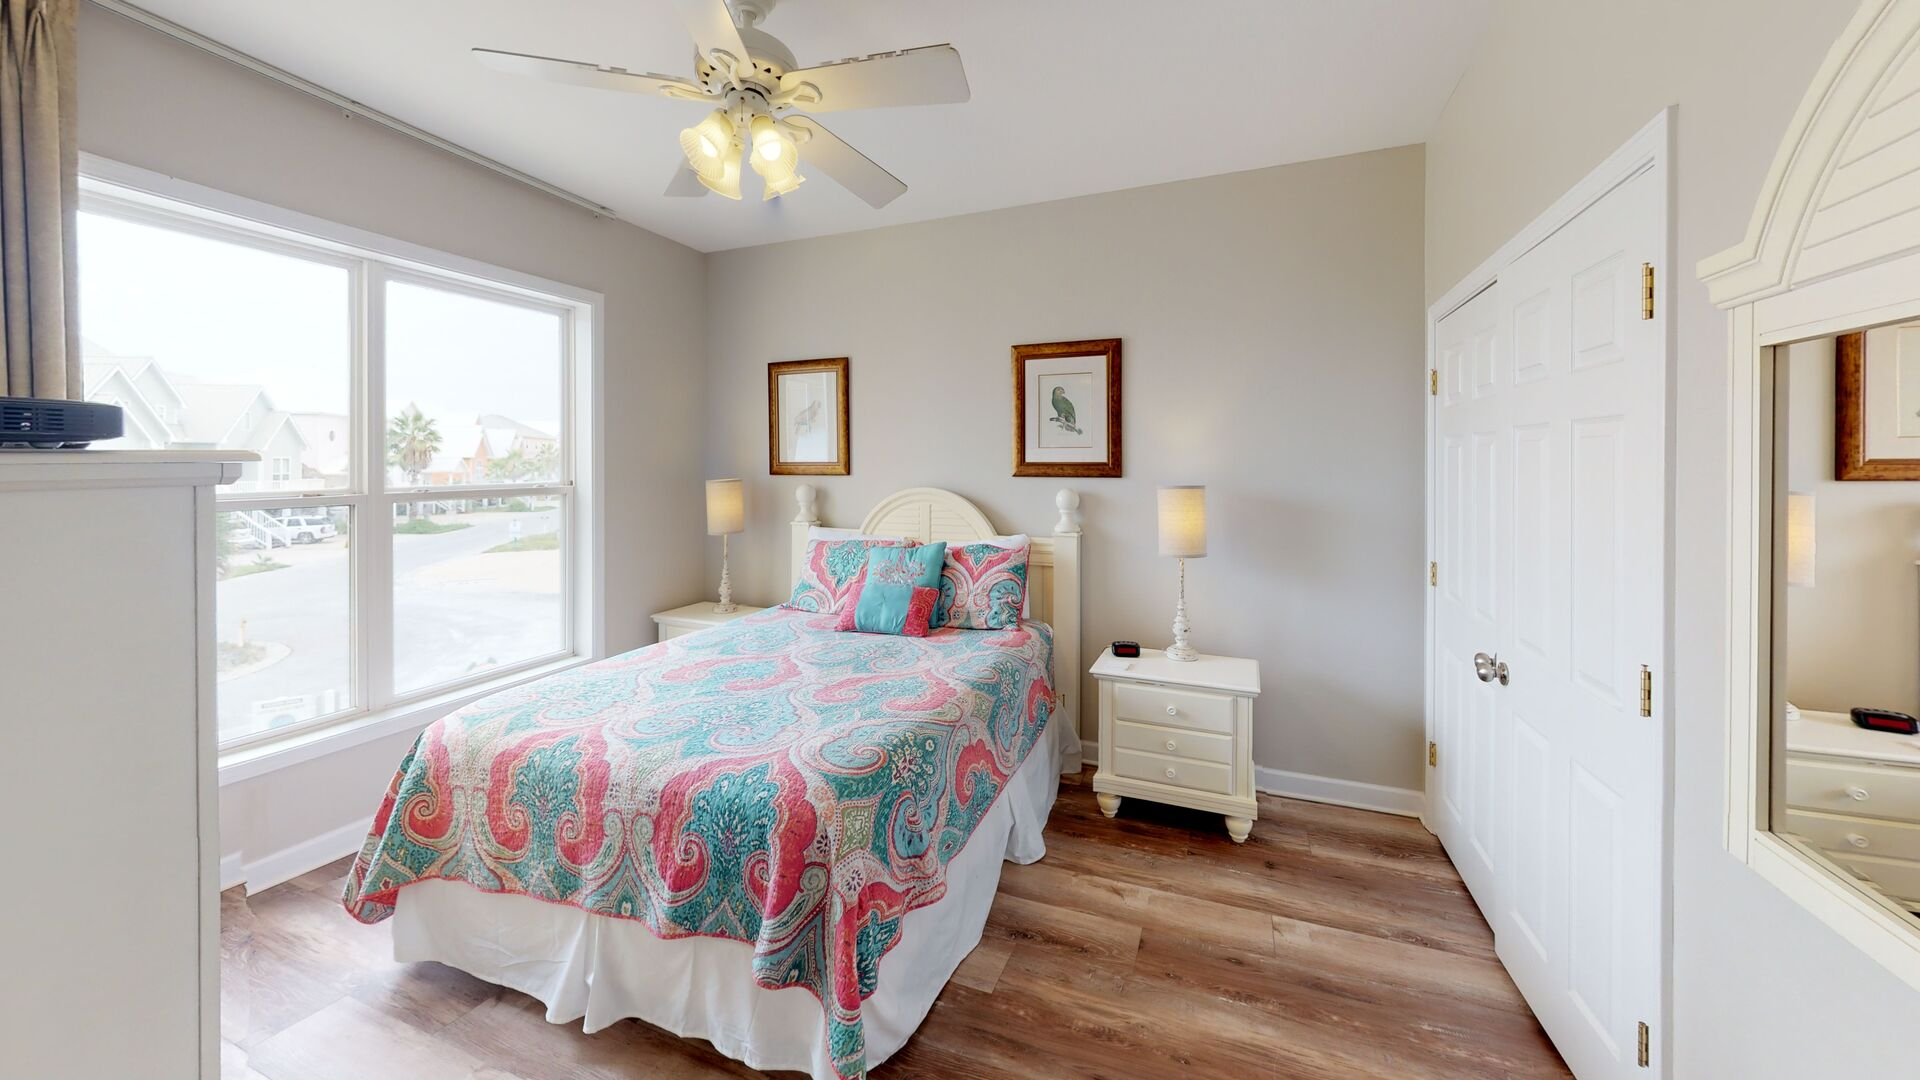 Spacious Bedroom Has Large Bed and Beautiful Floors.